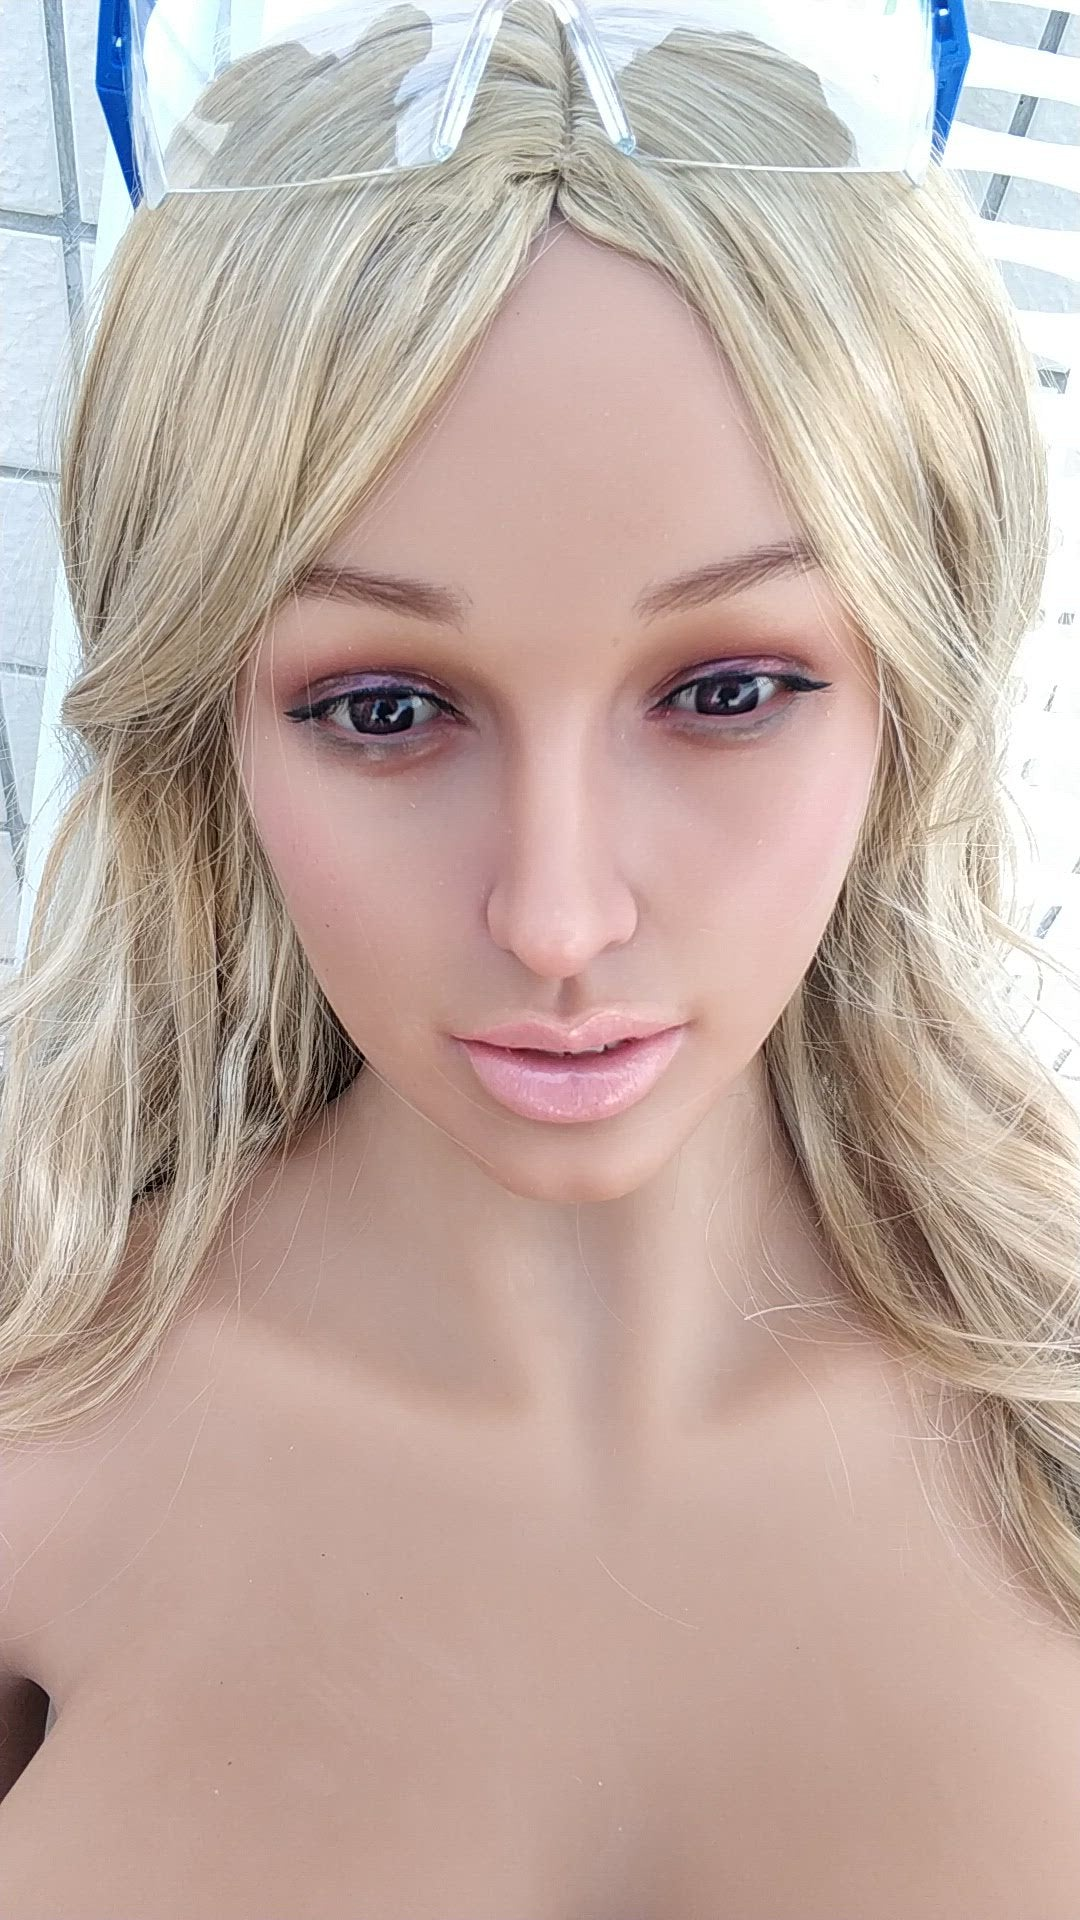 Buy Real Life Sex Dolls - The Best Sex Dolls for Sex - Custom Sex Dolls by Premiumsexdolls.co